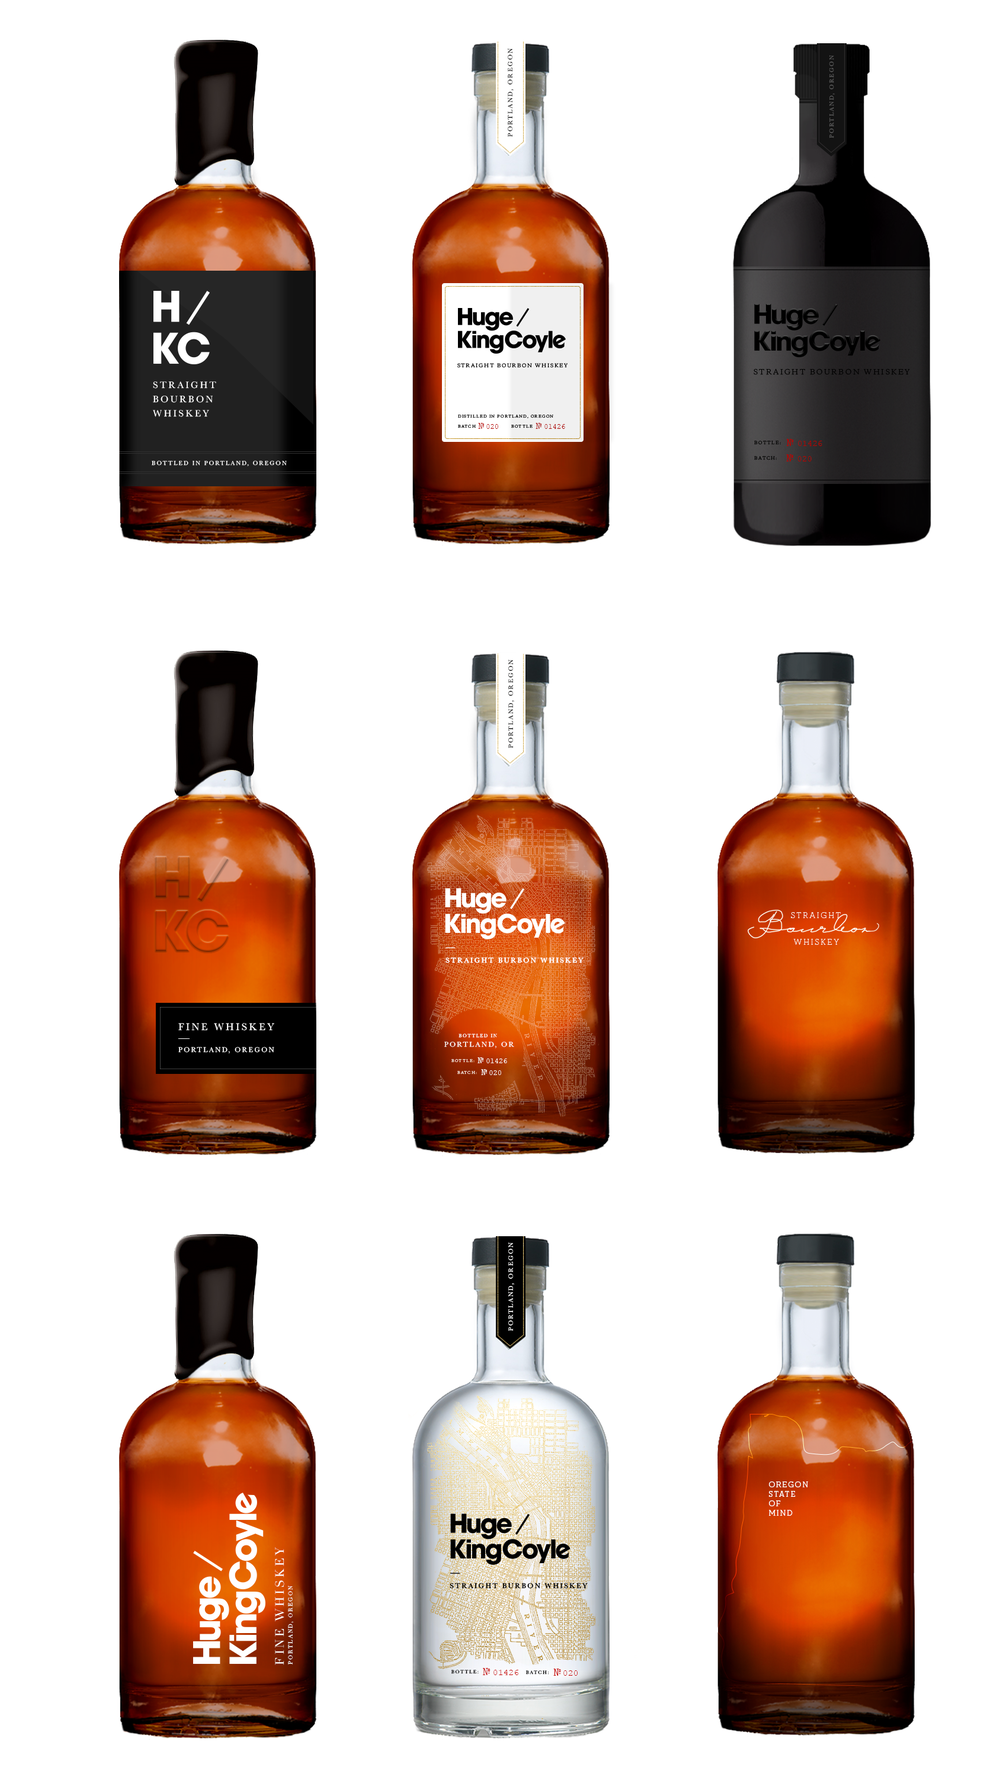 HKC_WHISKEY_0005_06.png